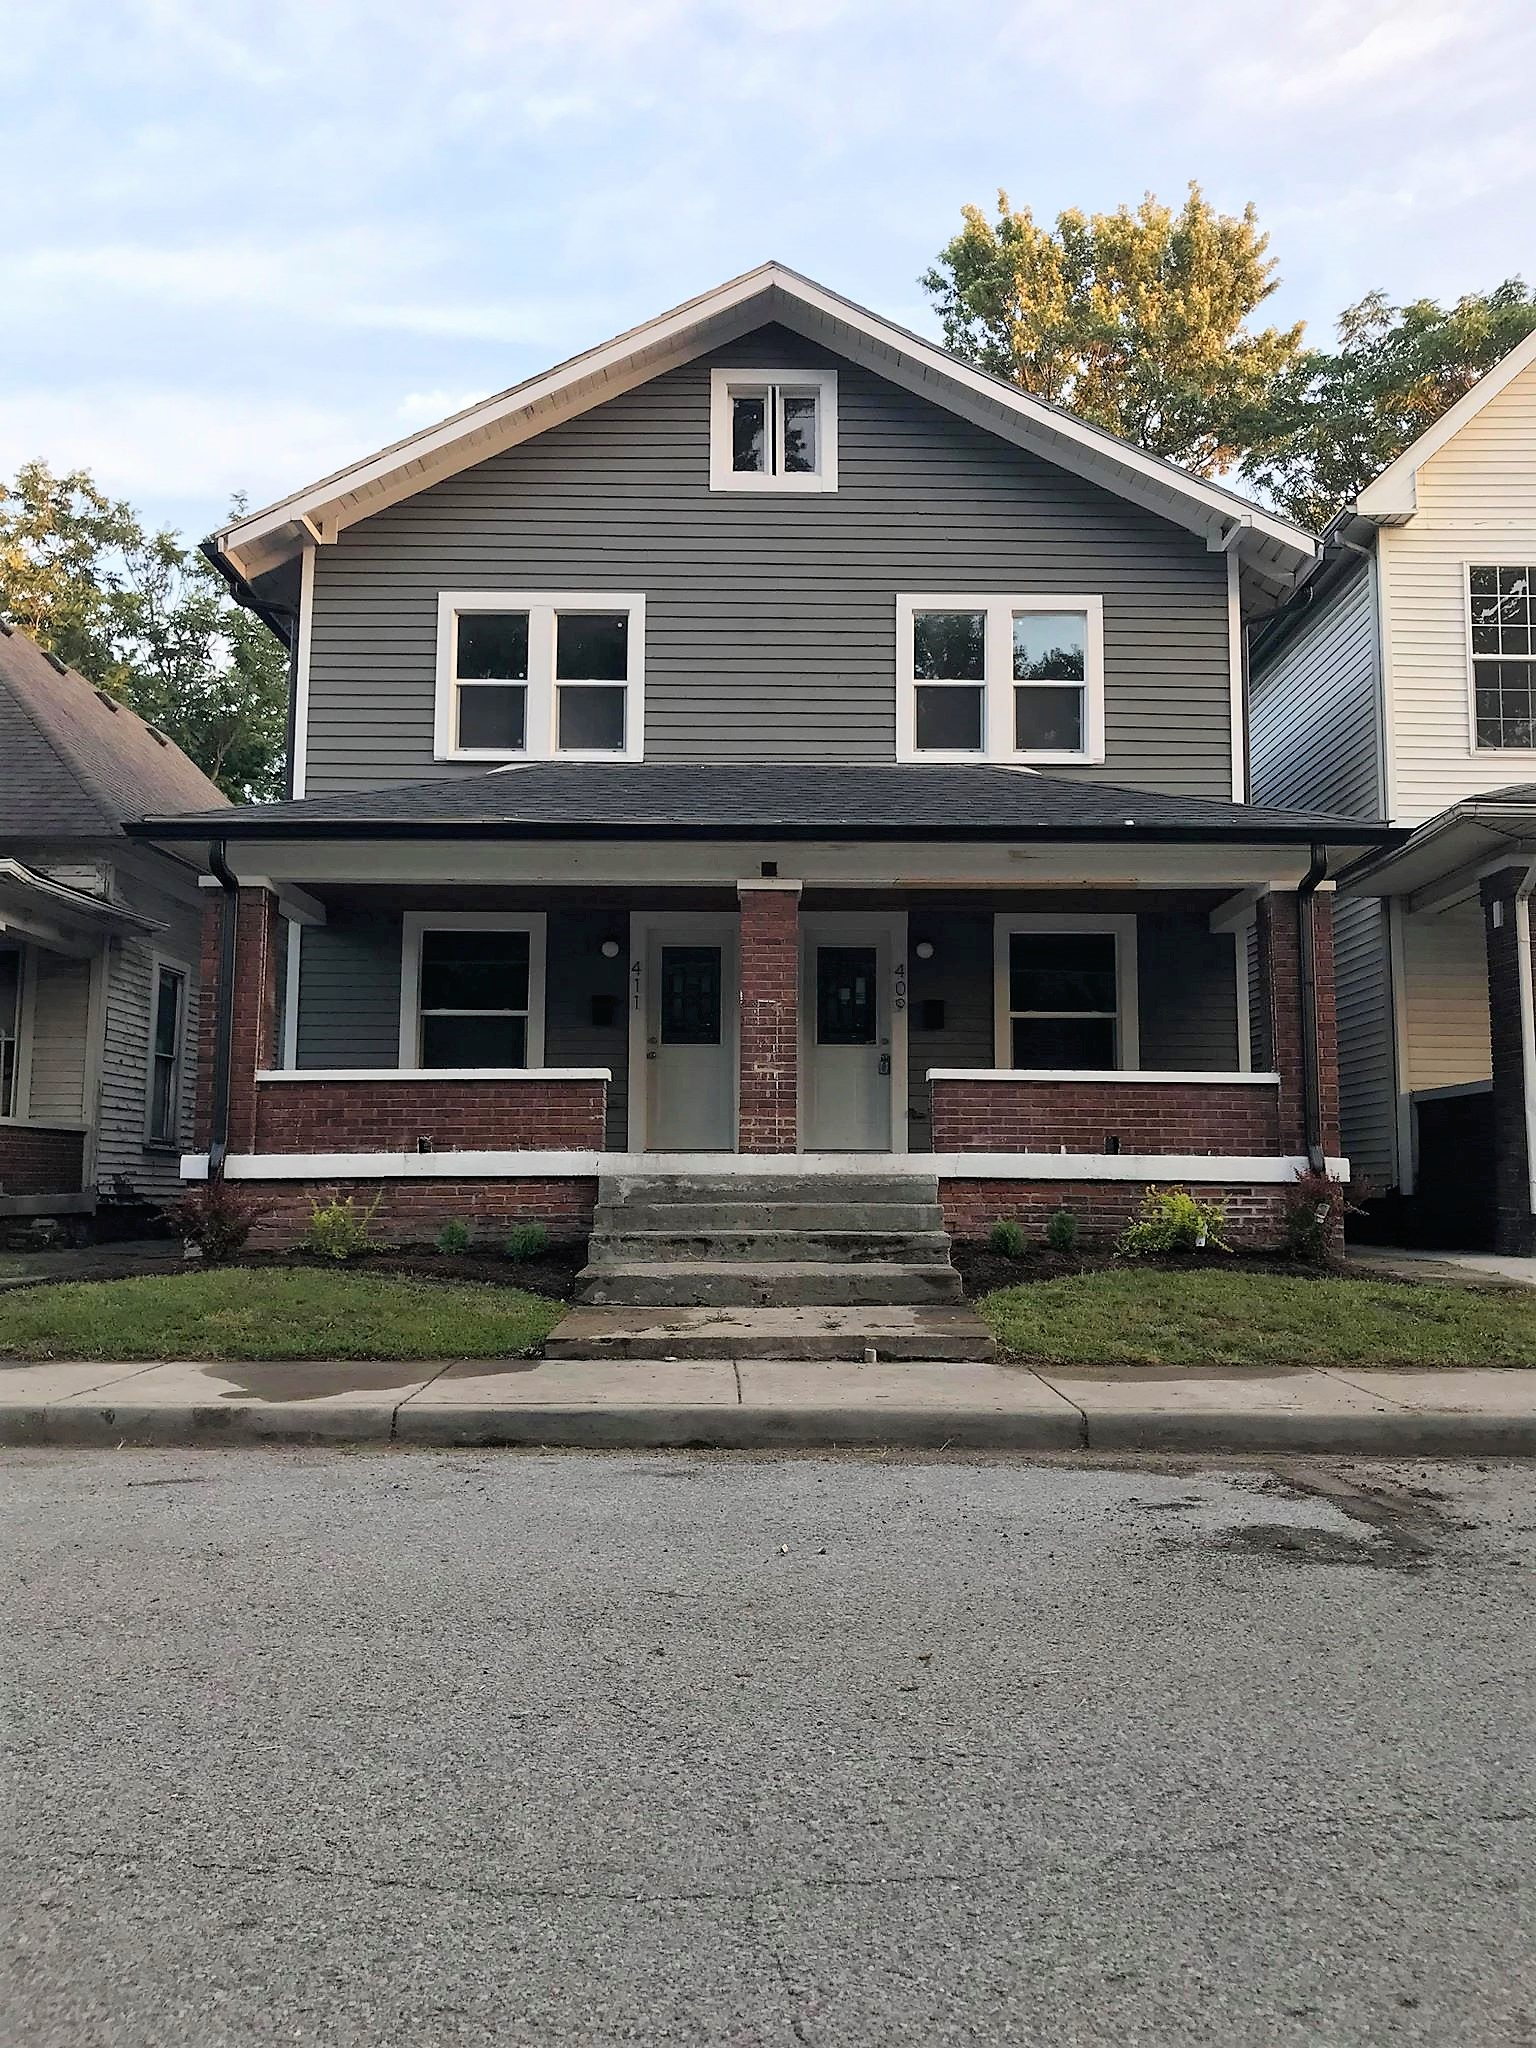 409 & 411 Sanders St, Indianapolis, IN